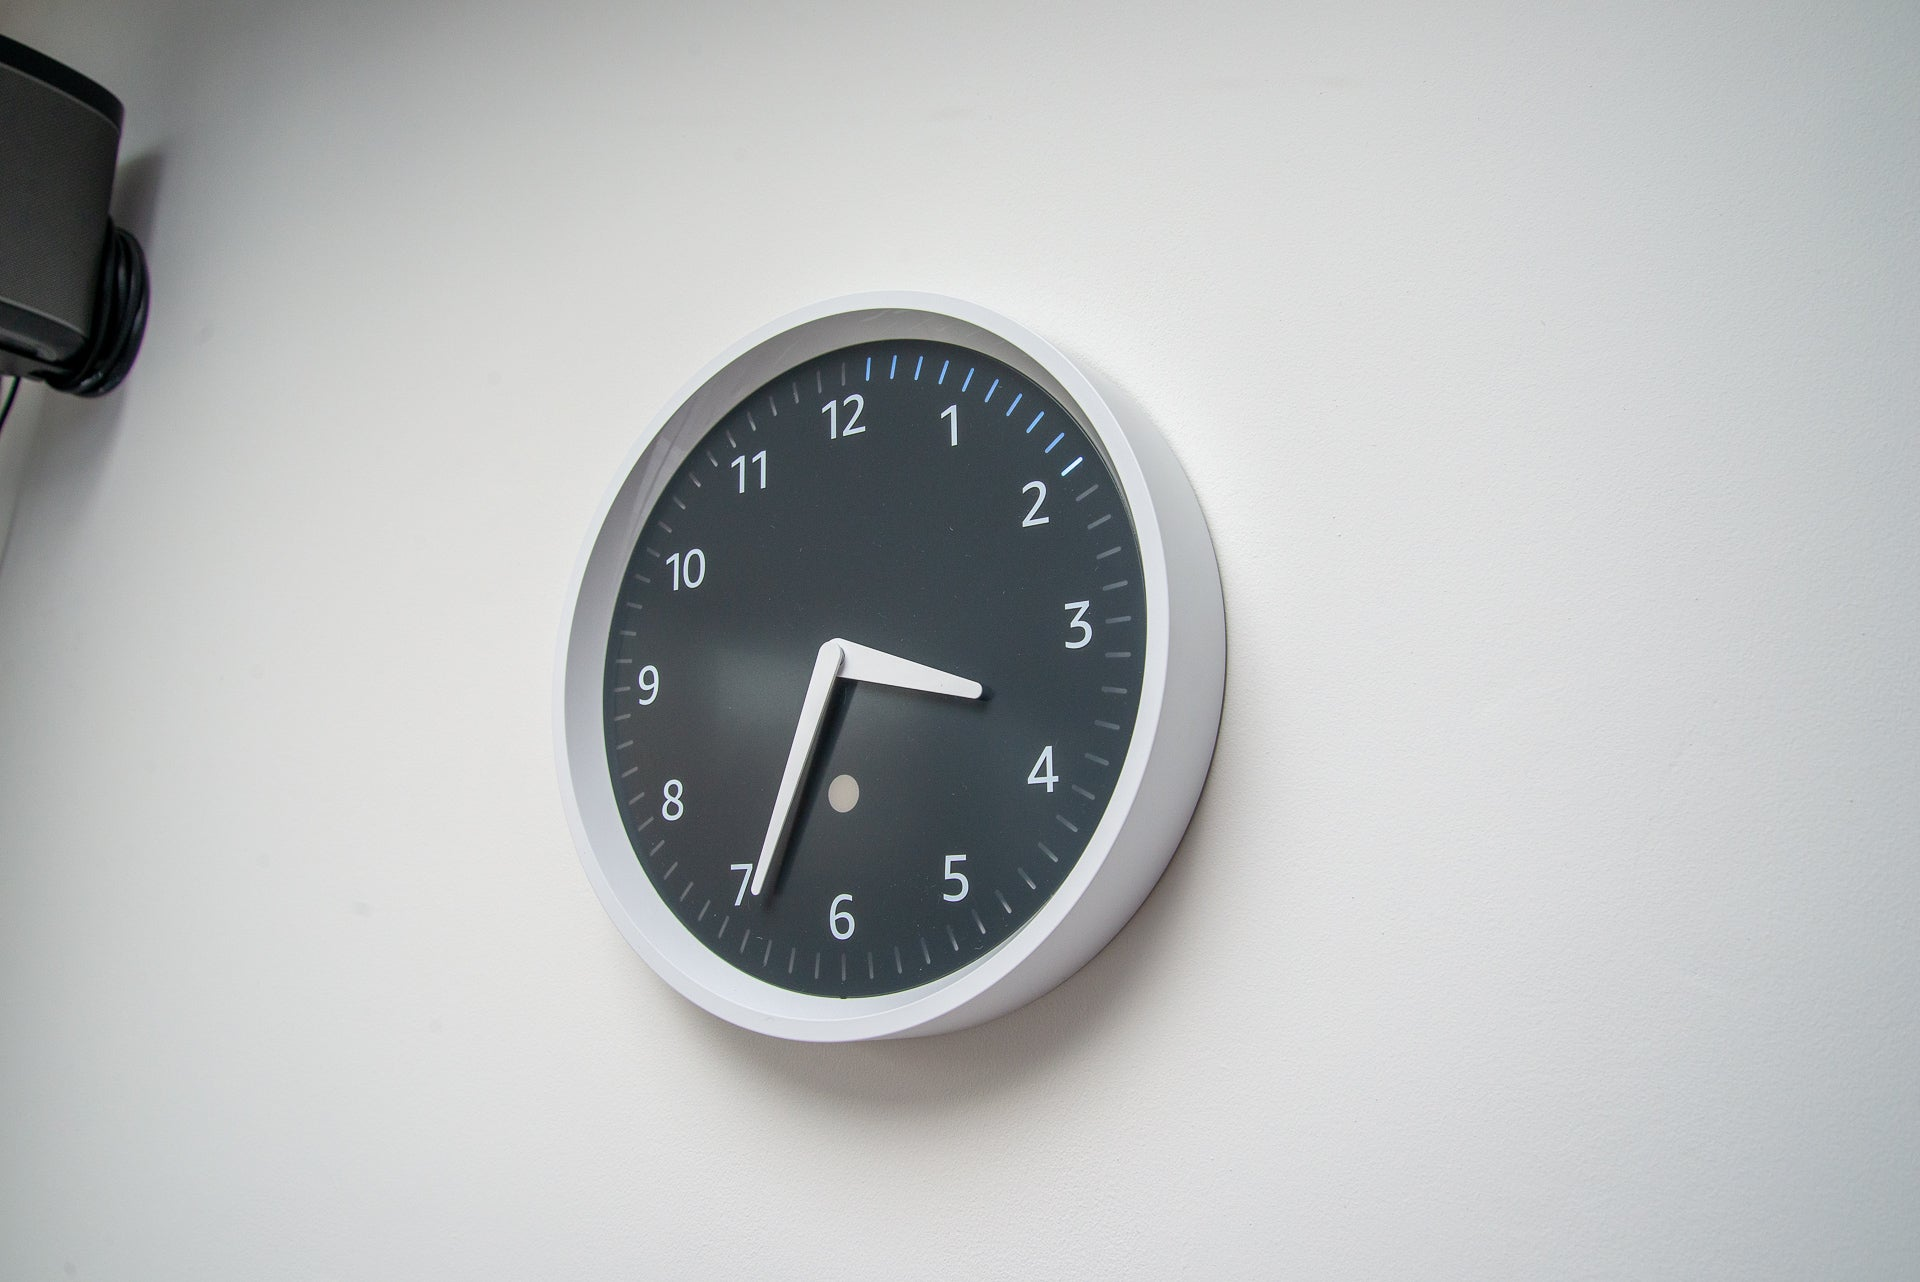 Amazon Echo wall clock with timer